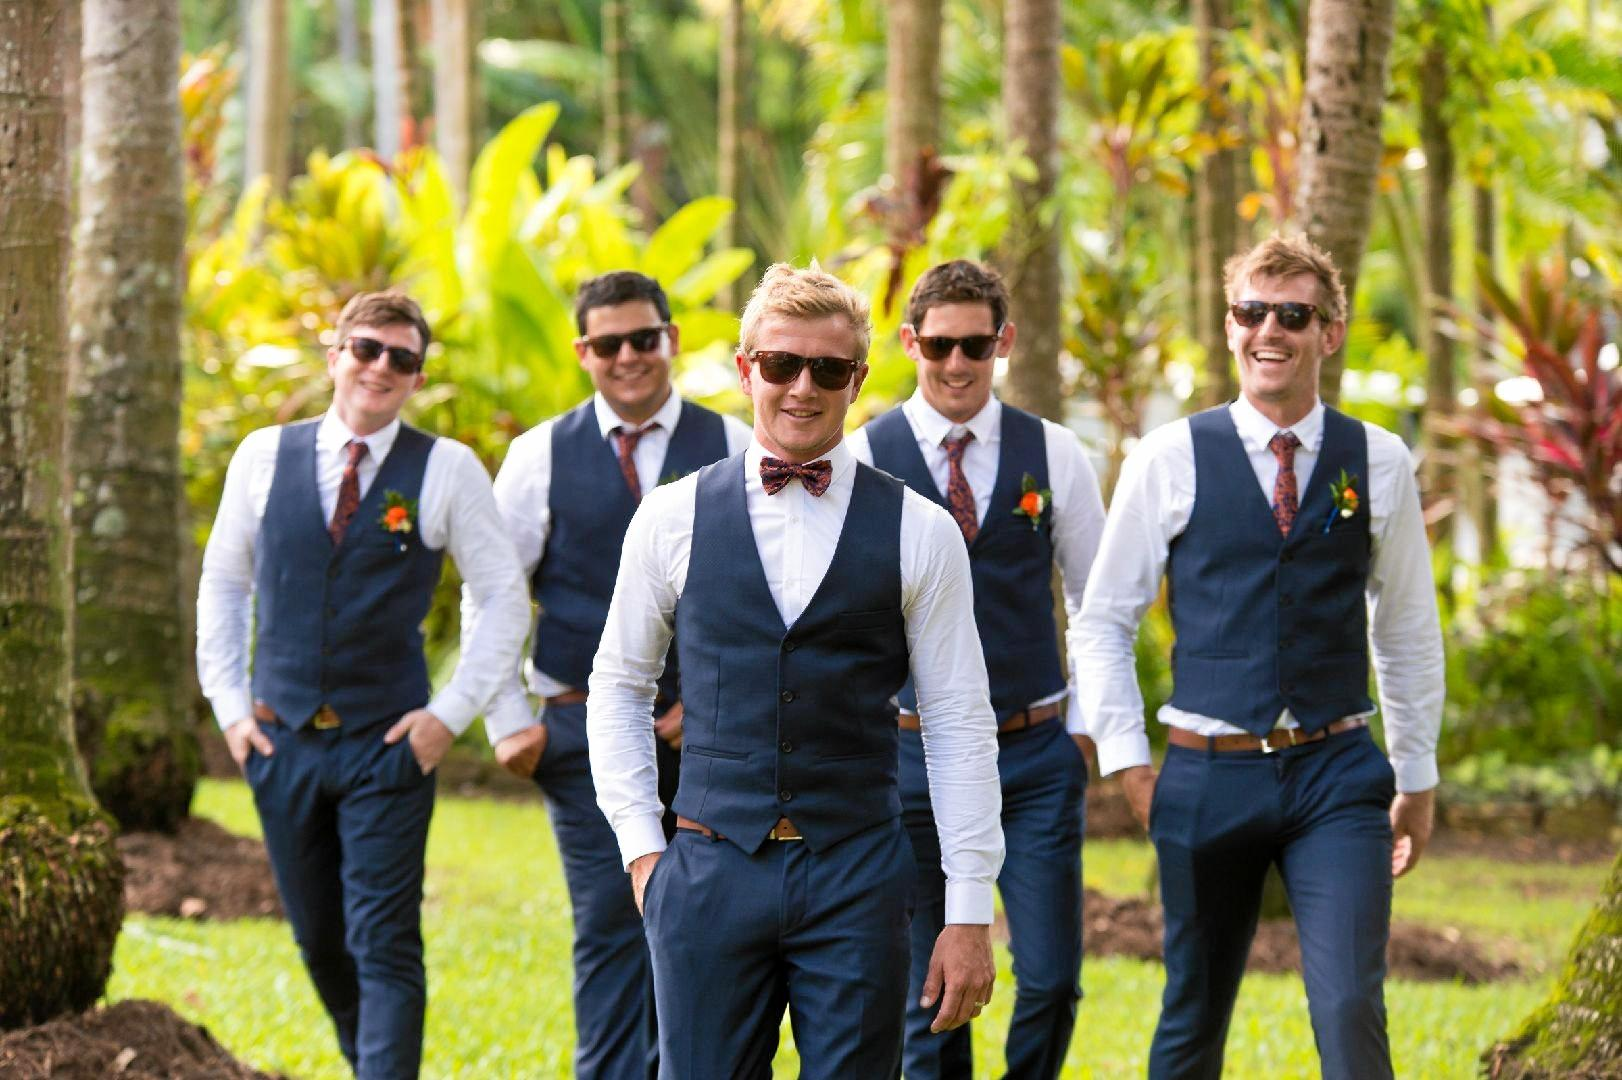 The groomsmen wore black and white tuxes with Ray Bans to top off the look.